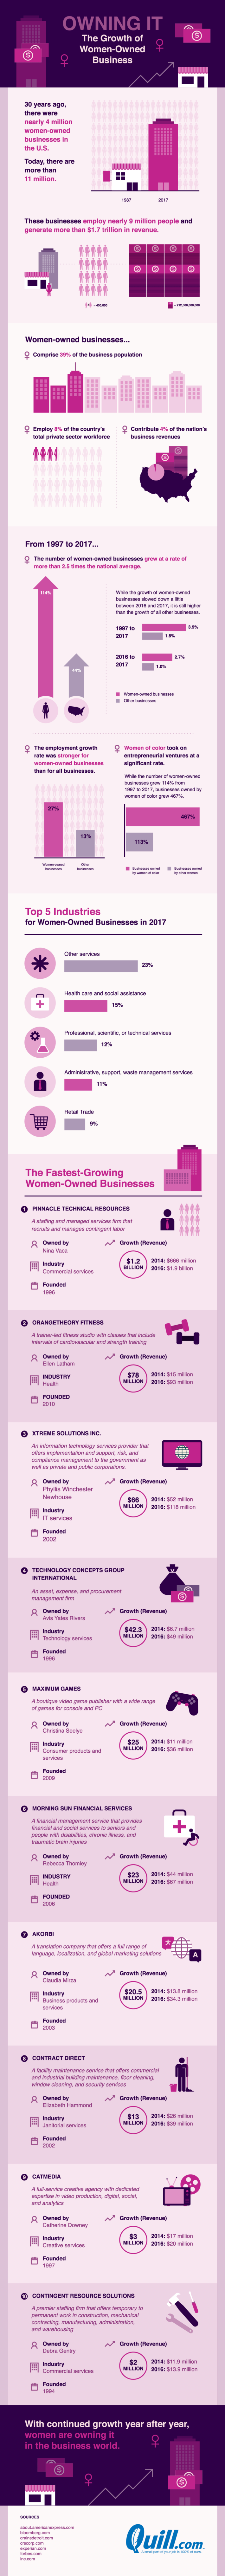 Owning it: The growth of women-owned business